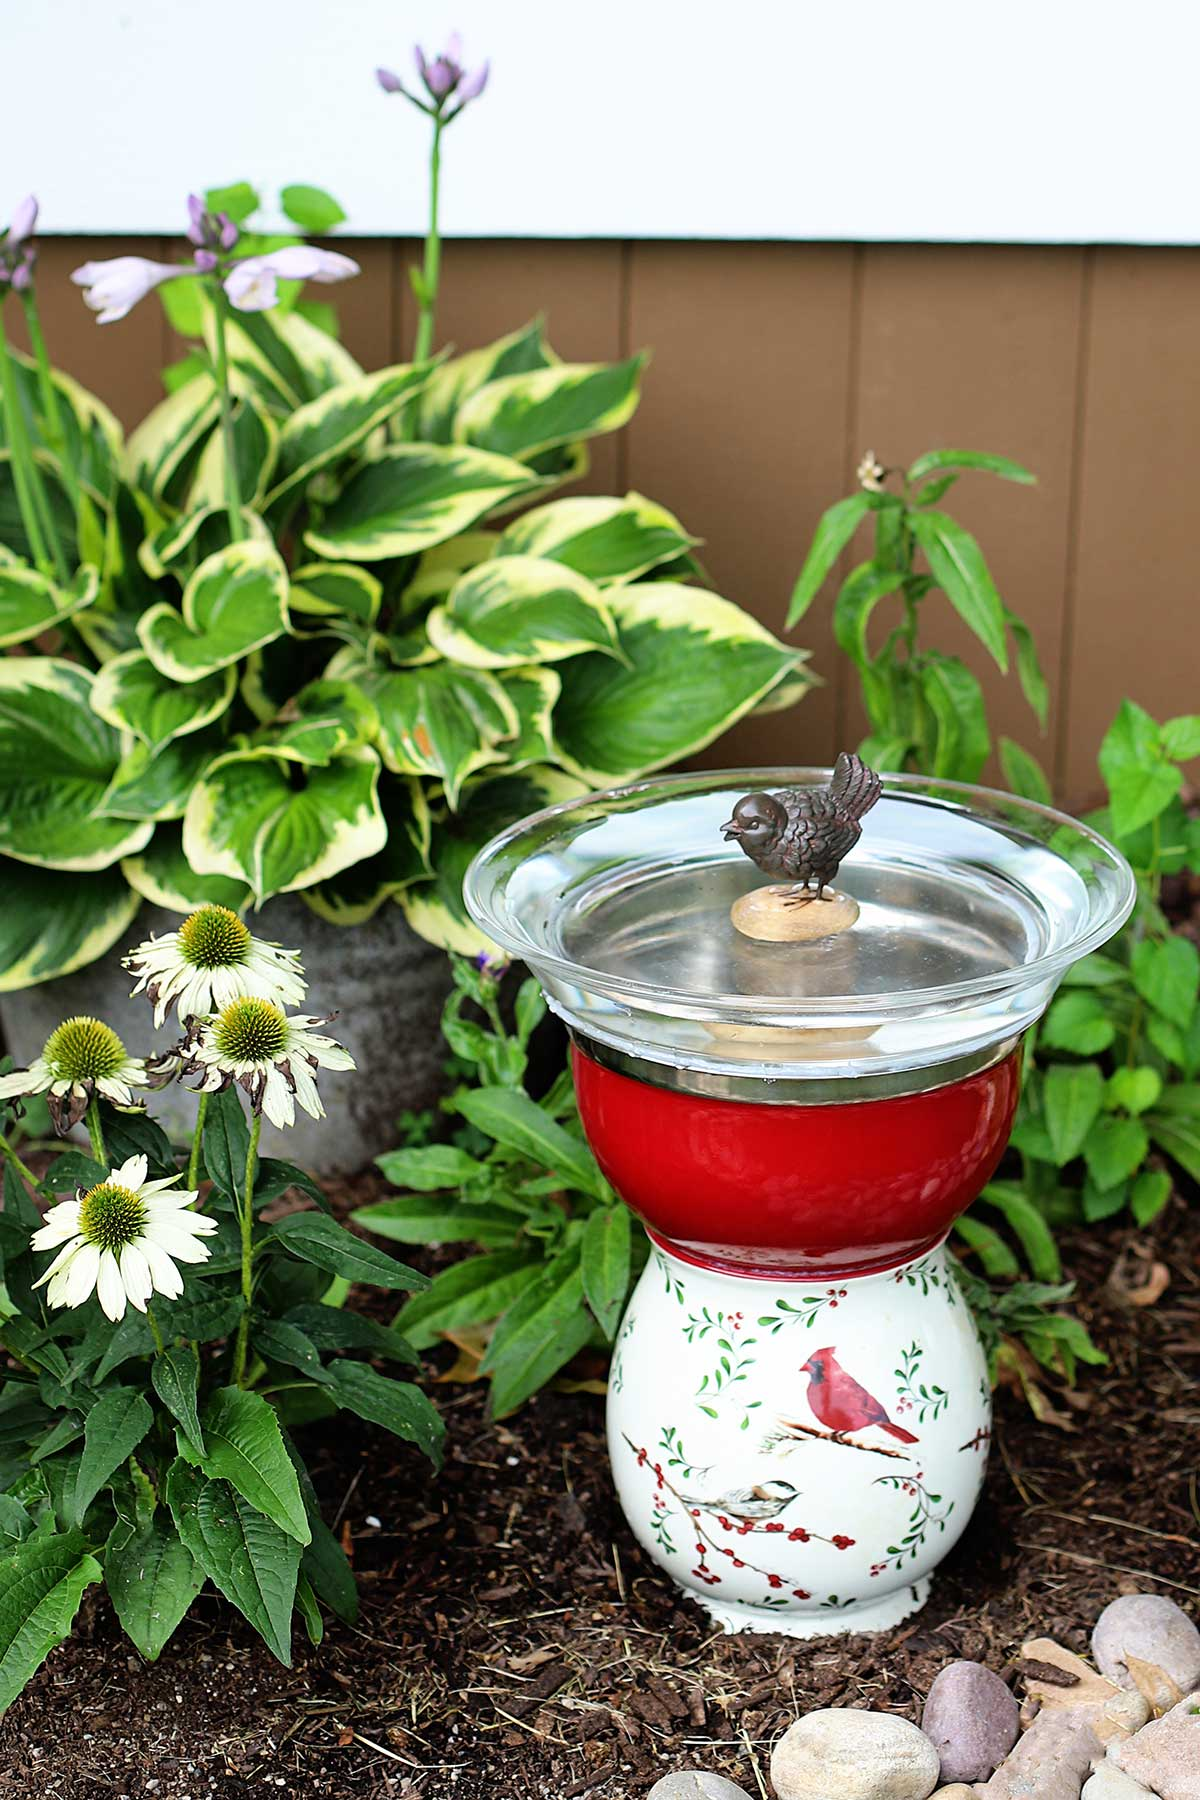 Upcycled thrift store glassware made into a bird bath for the garden.